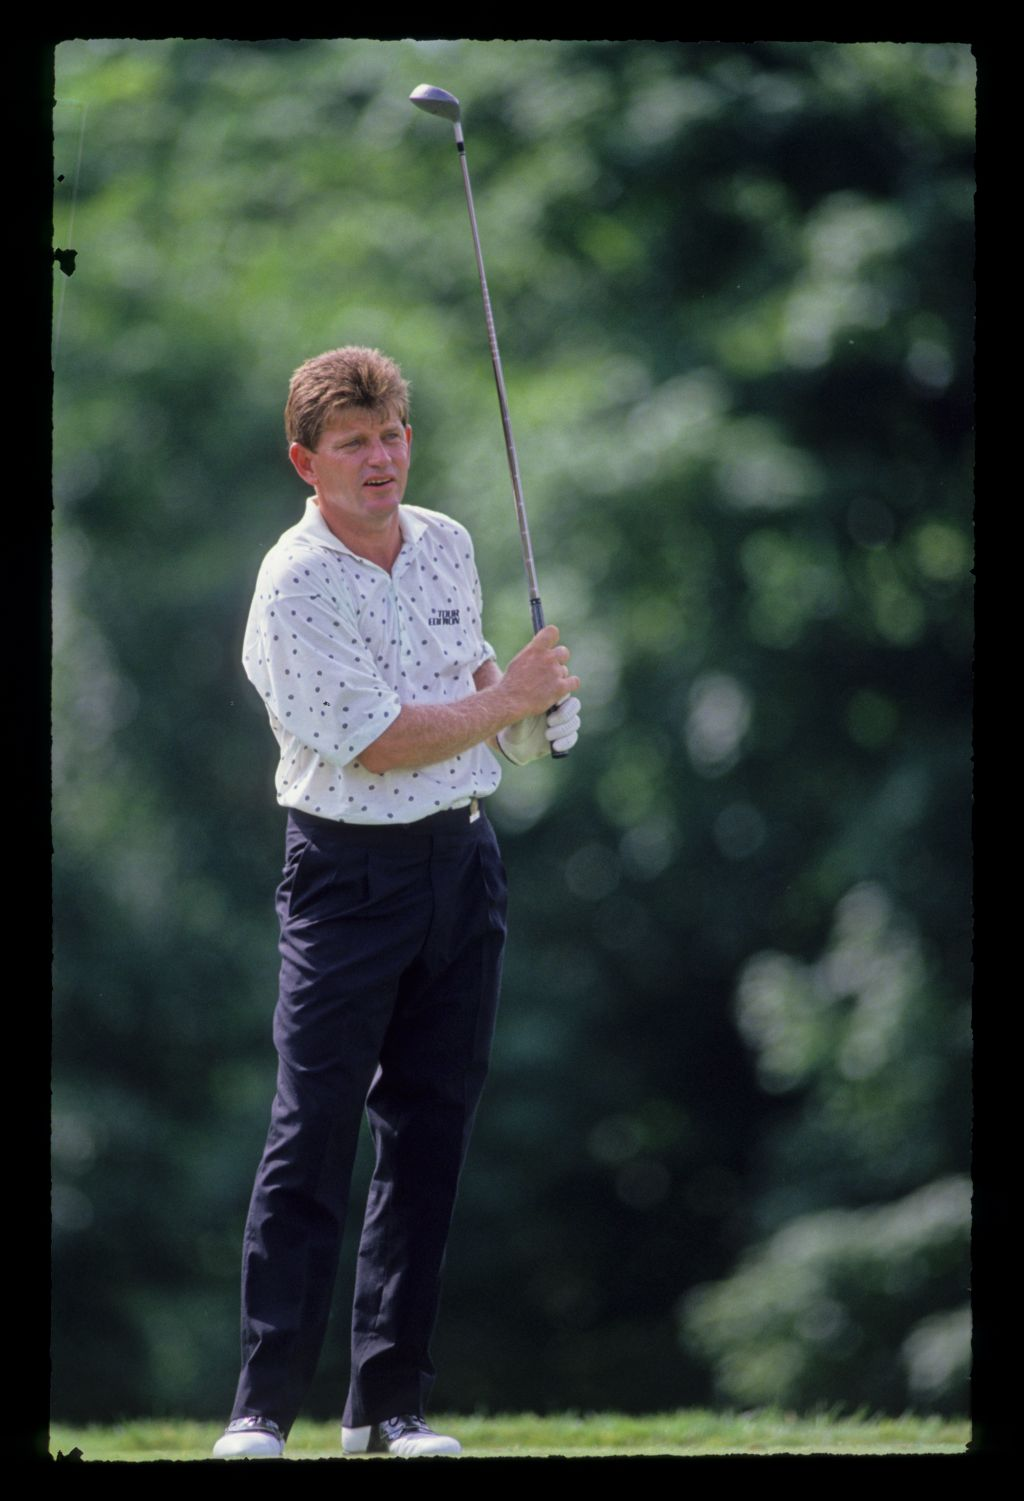 Nick Price watching his drive closely during the 1991 US Open